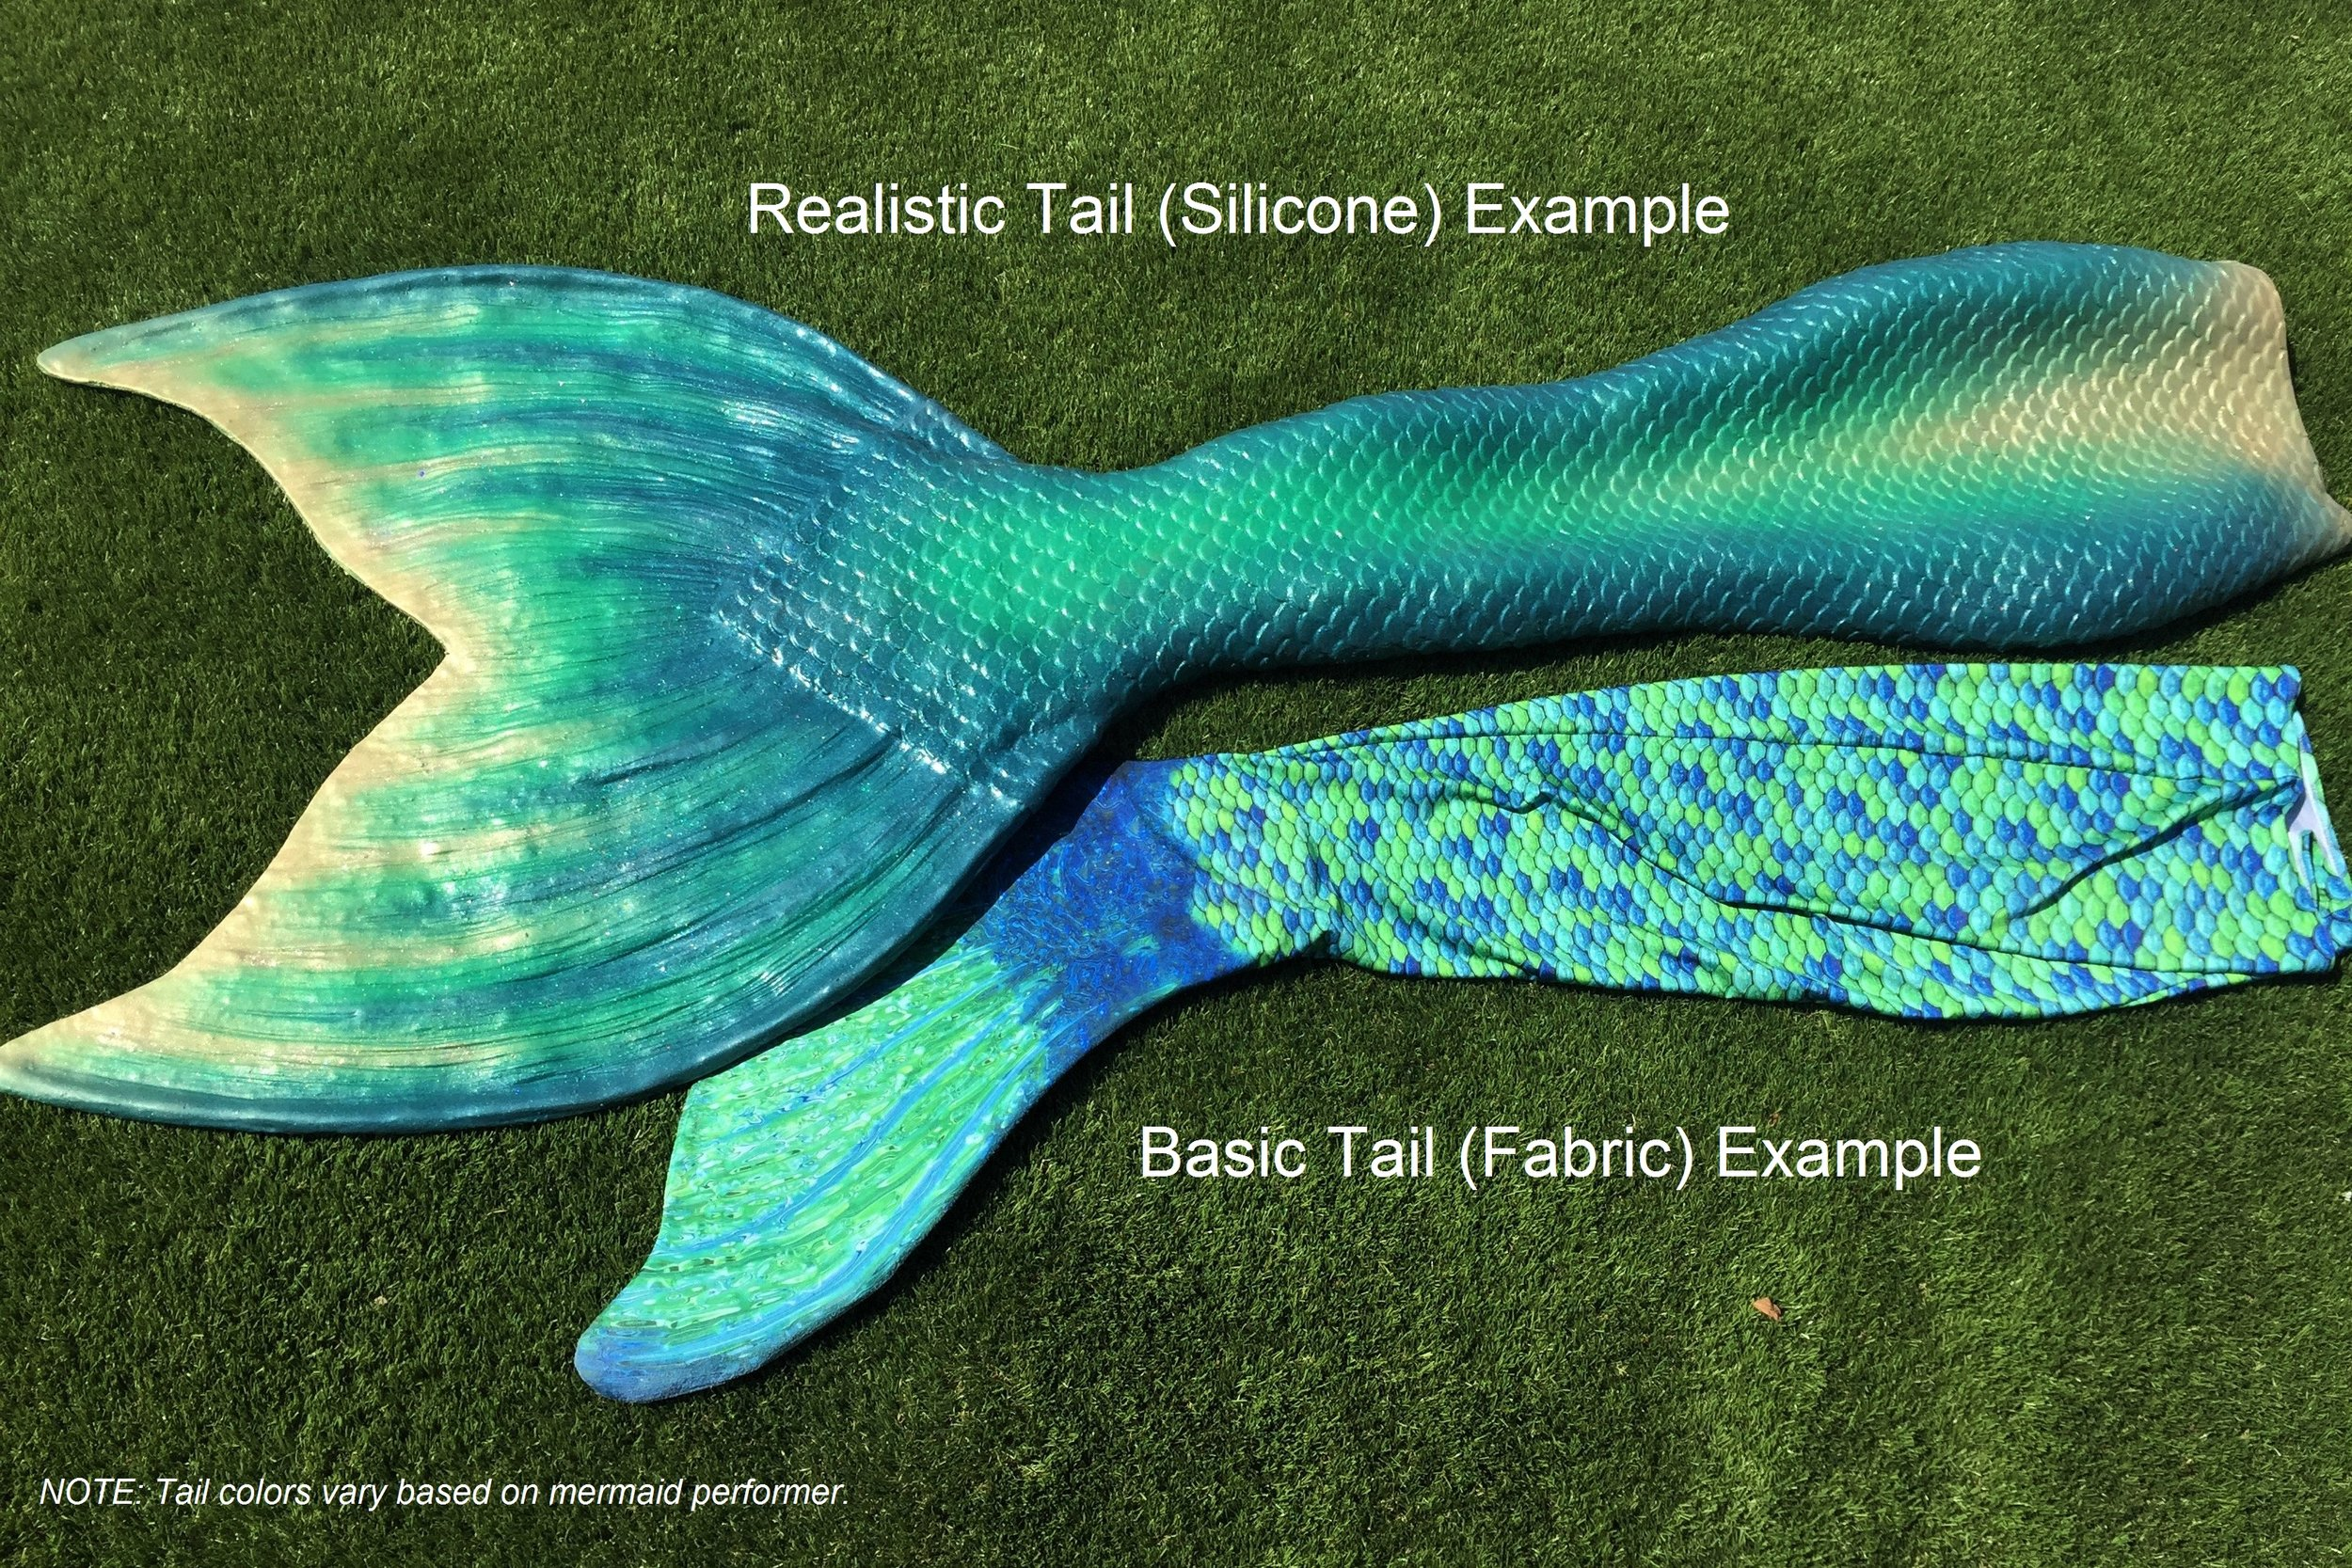 Silicone and Fabric Mermaid Tail Comparison